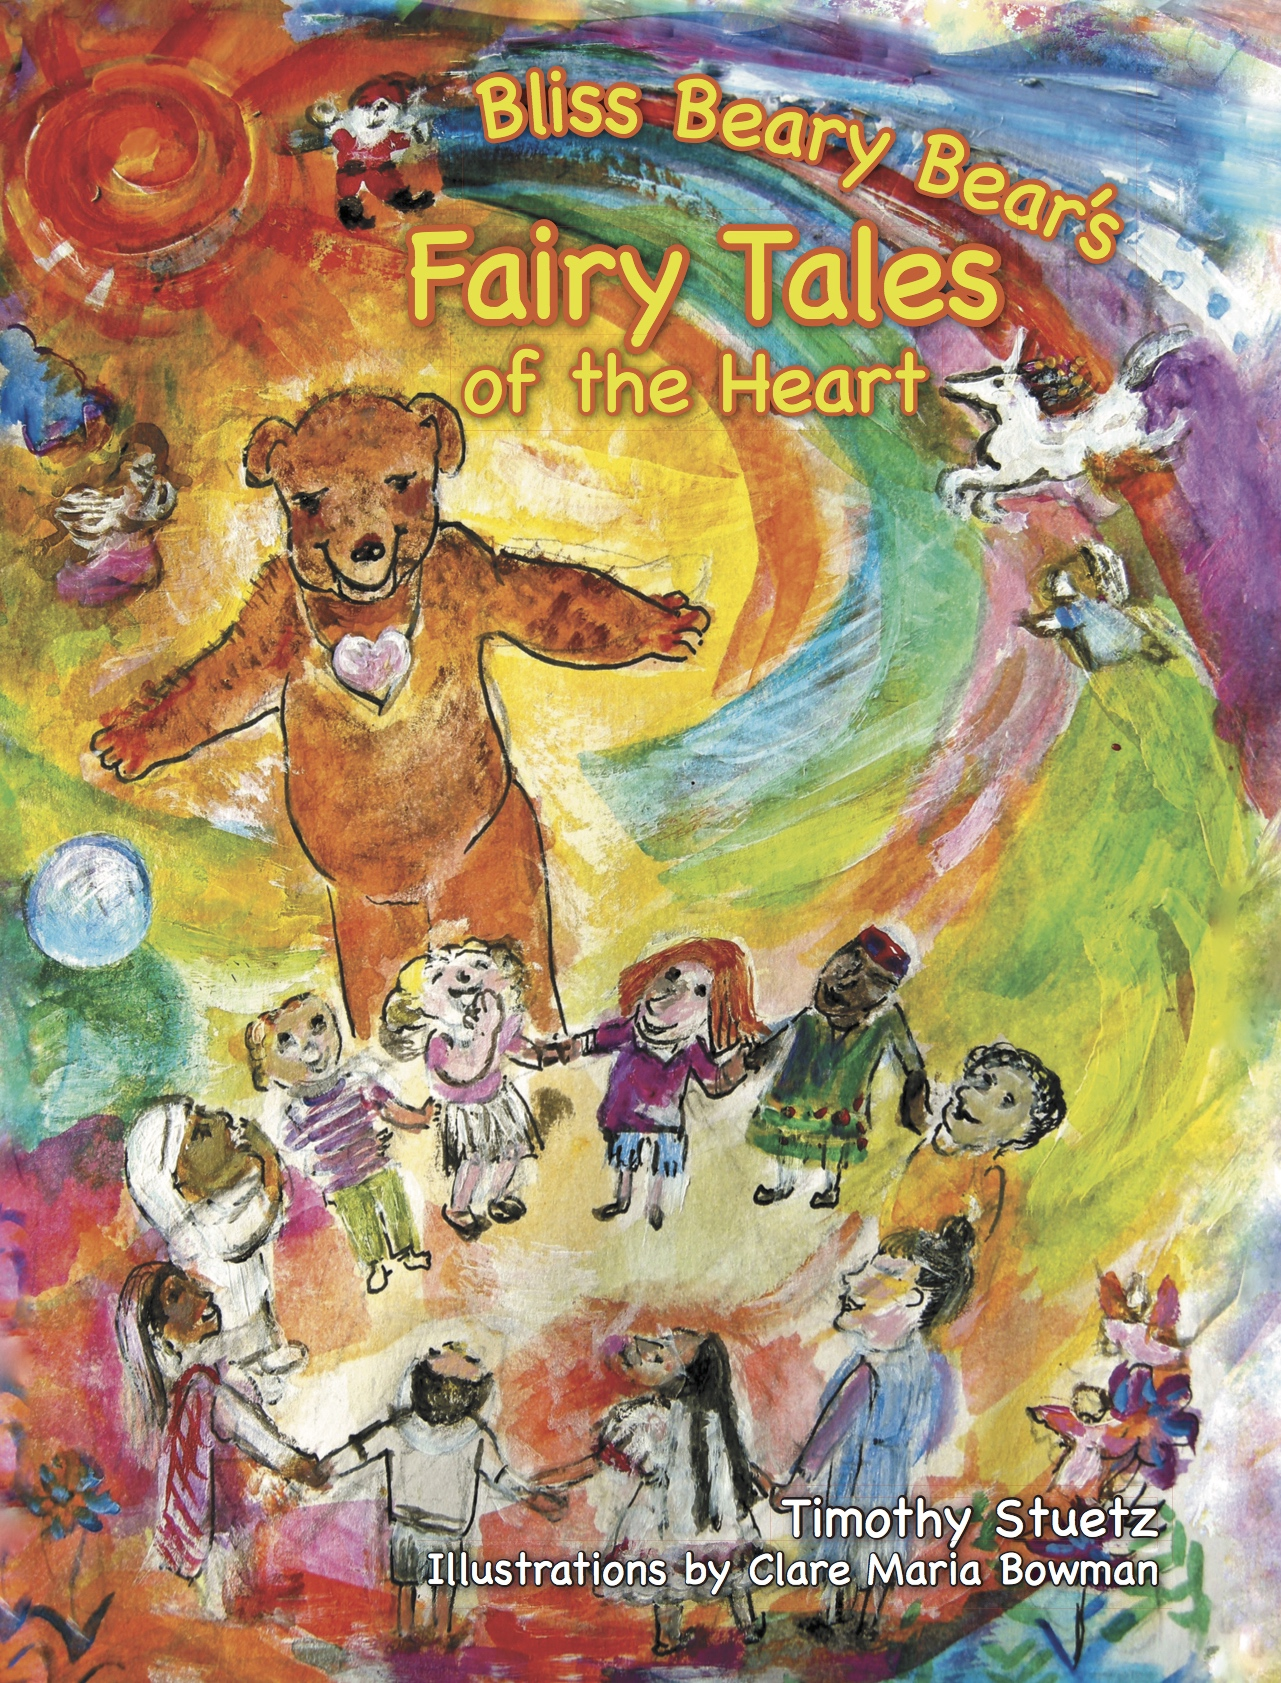 Bliss Beary Bear's Fairy Tales of the Heart-Volume 1